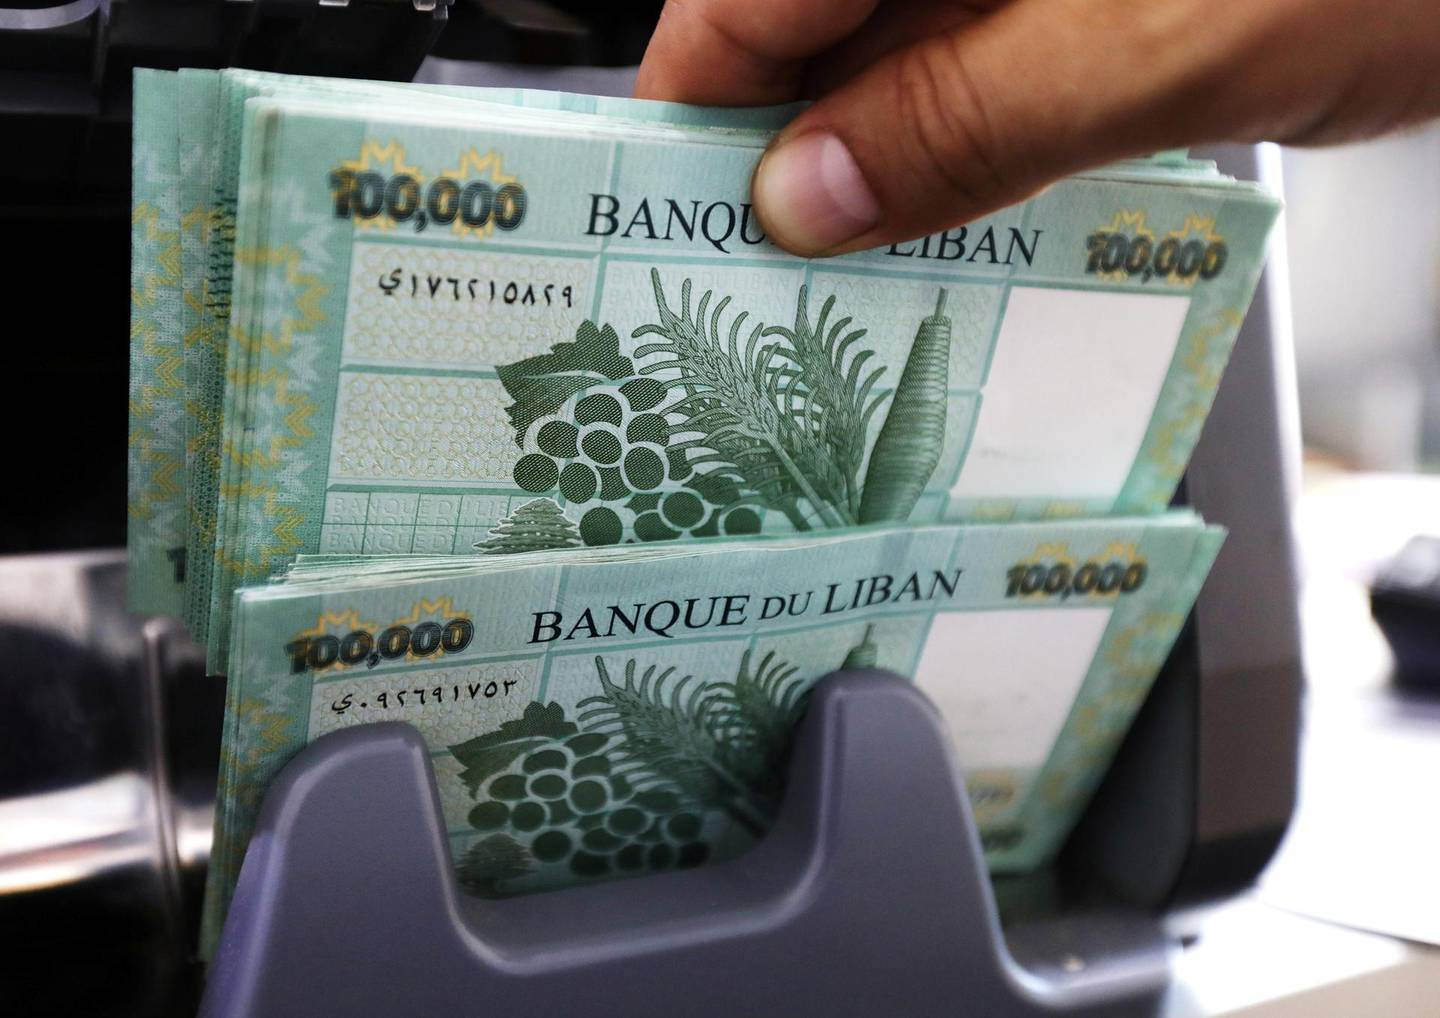 FILE PHOTO: Lebanese pound banknotes are seen at a currency exchange shop in Beirut, Lebanon June 15, 2020. REUTERS/Mohamed Azakir/File Photo